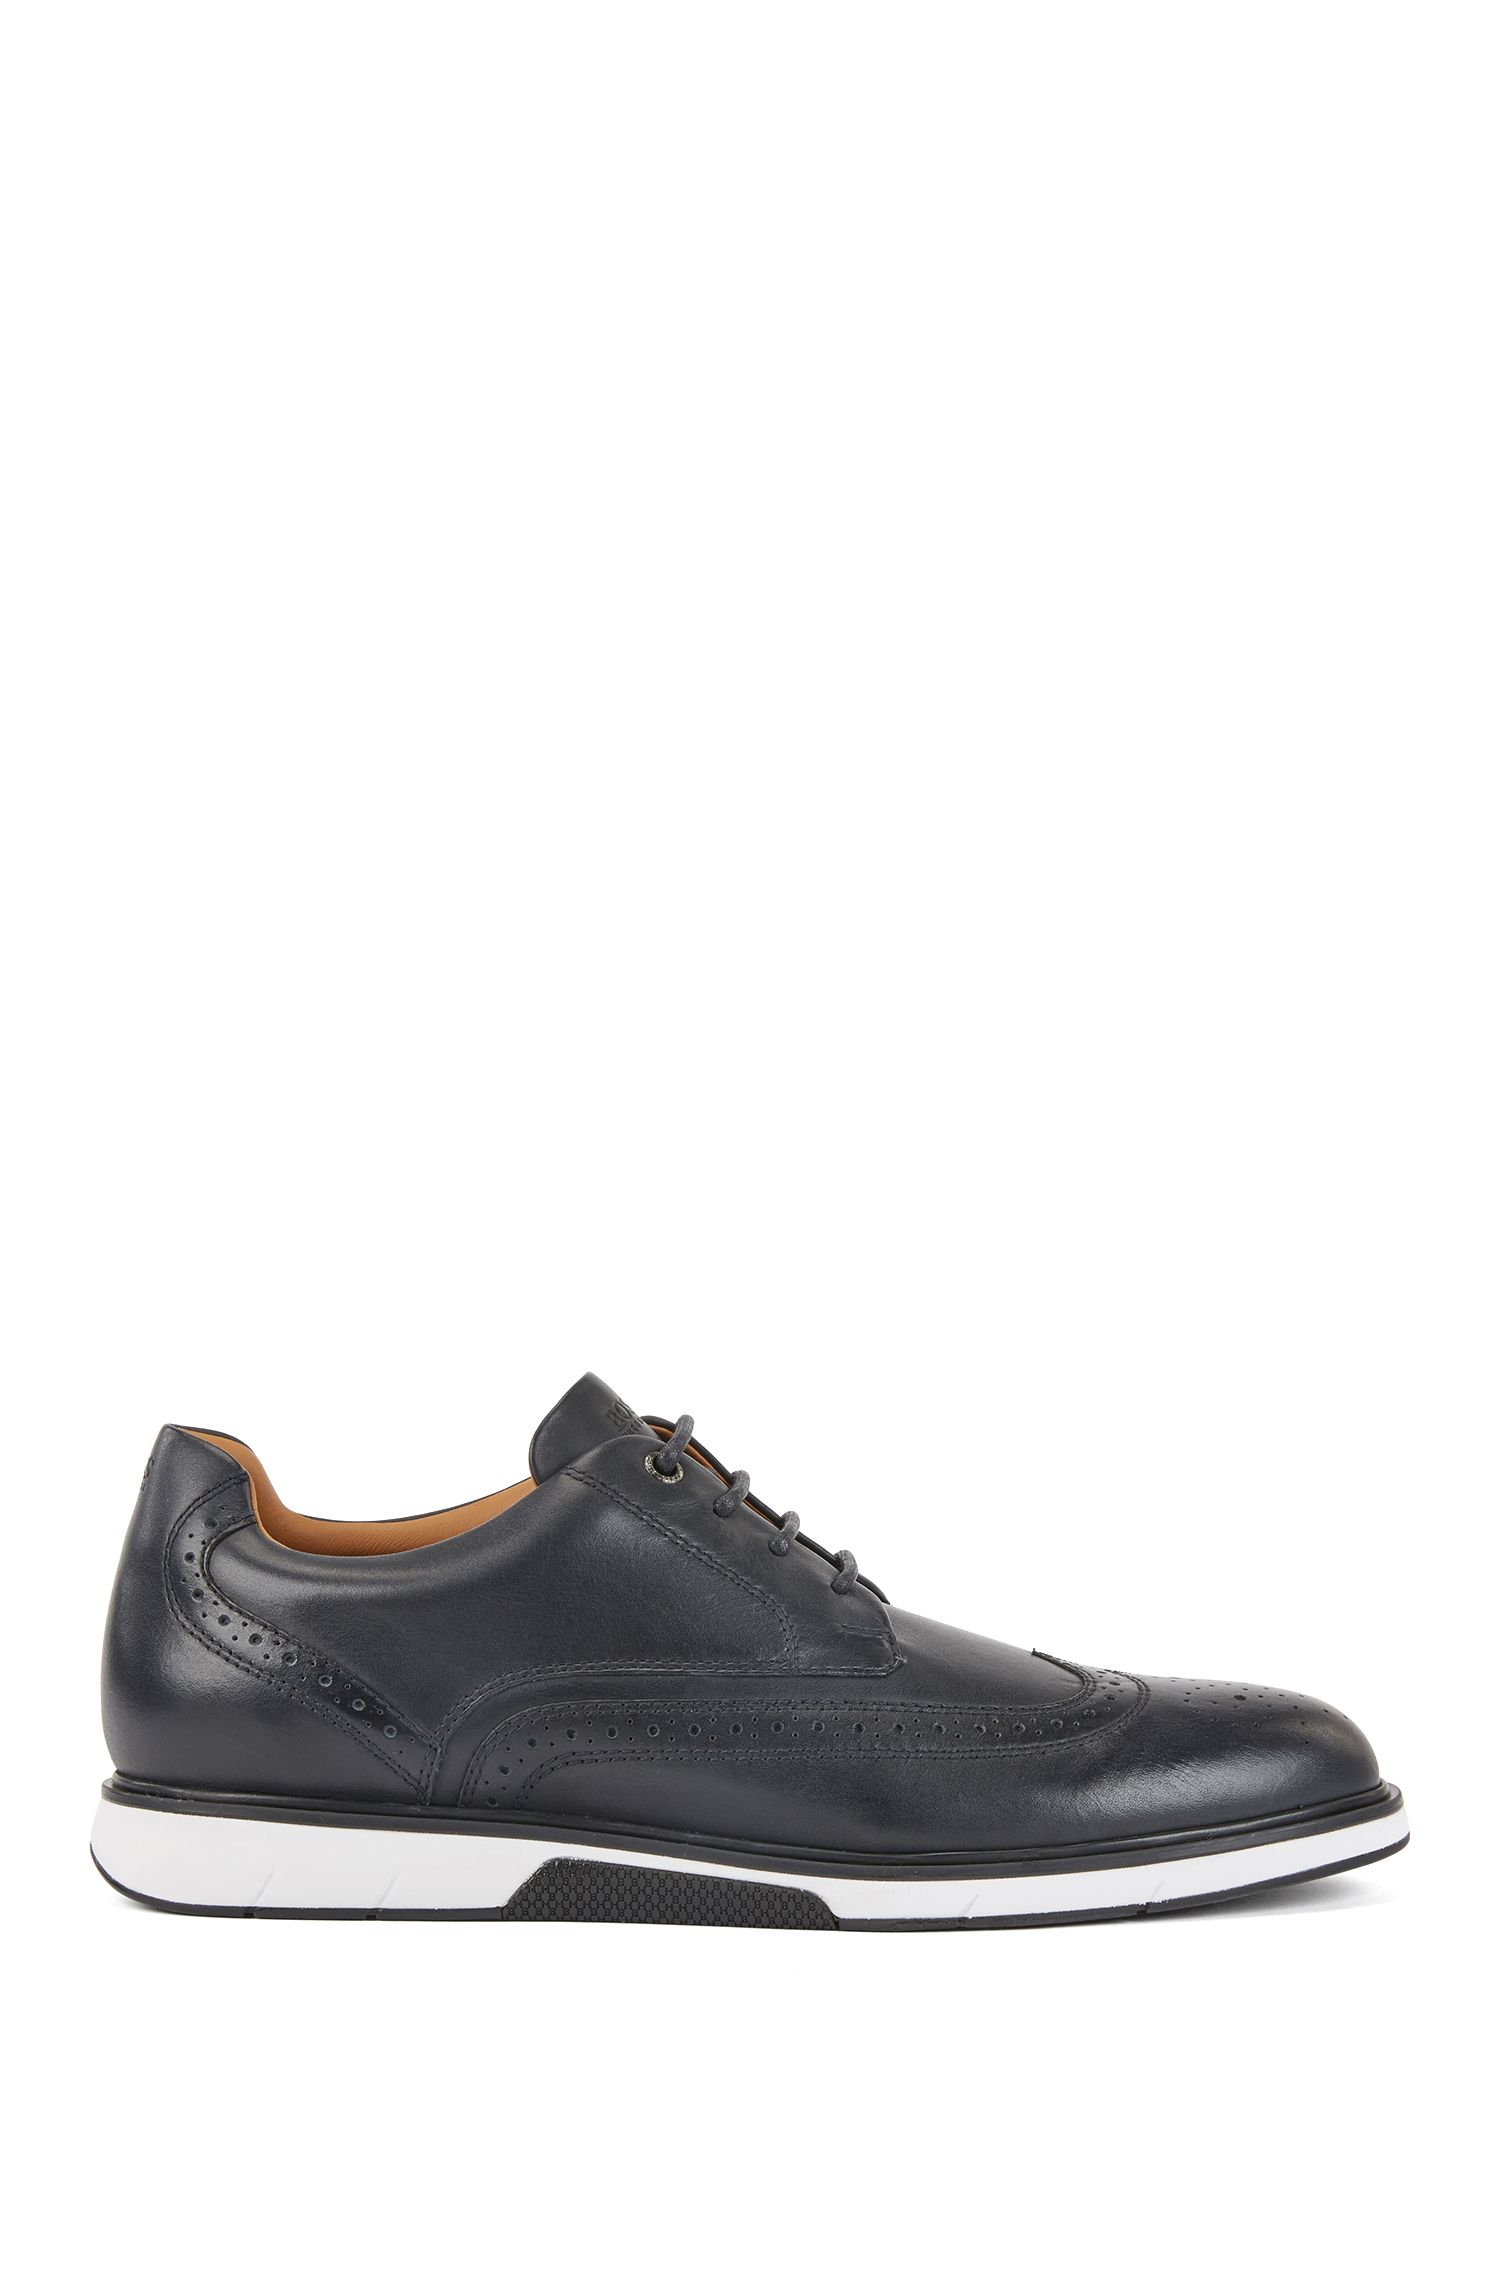 Leather Derby shoes with sneaker-style sole, Dark Blue